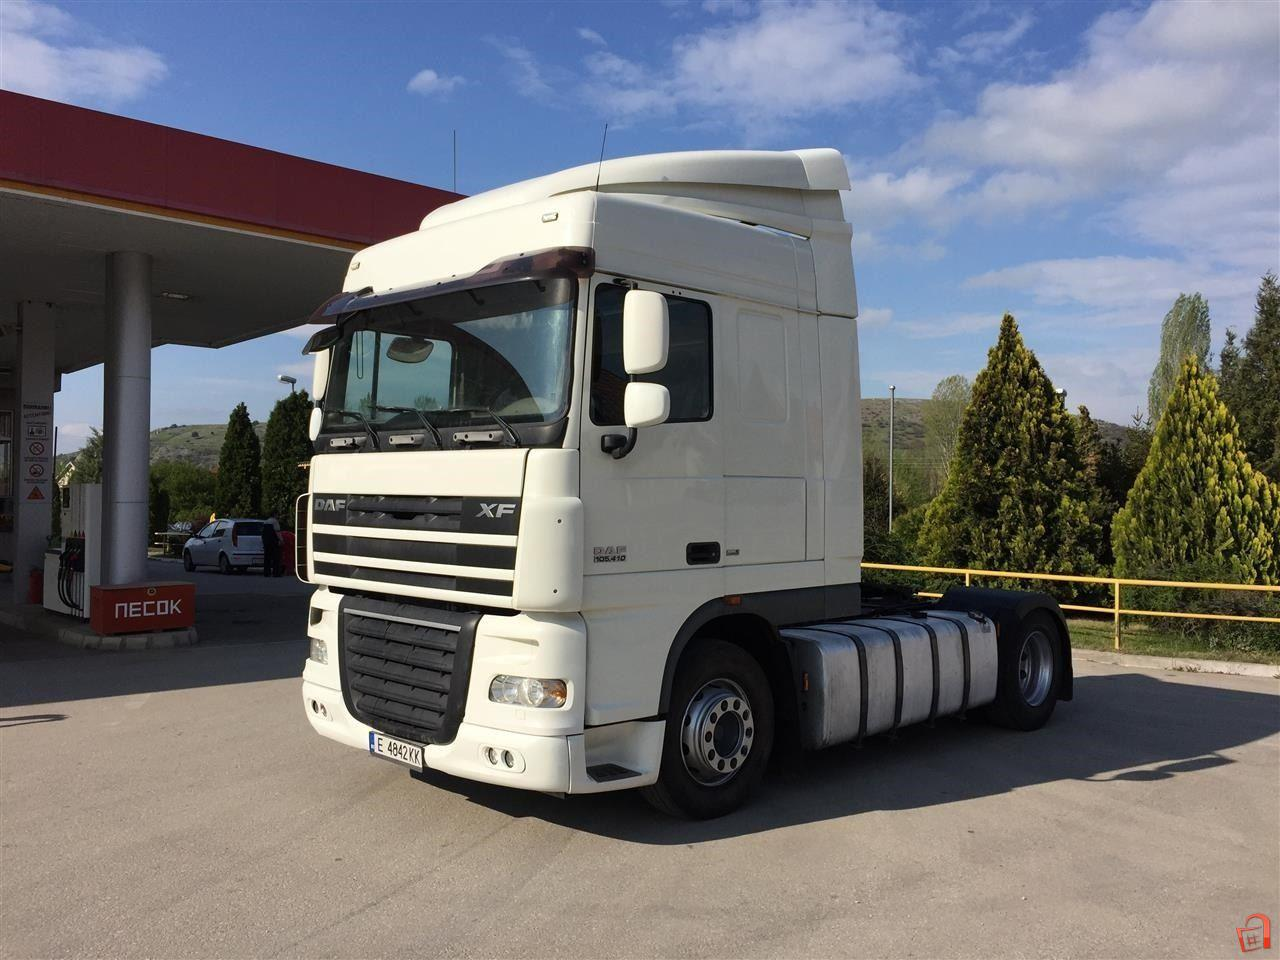 ad daf xf 105 410 euro 5 for sale kumanovo kumanovo vehicles heavy duty vehicles. Black Bedroom Furniture Sets. Home Design Ideas